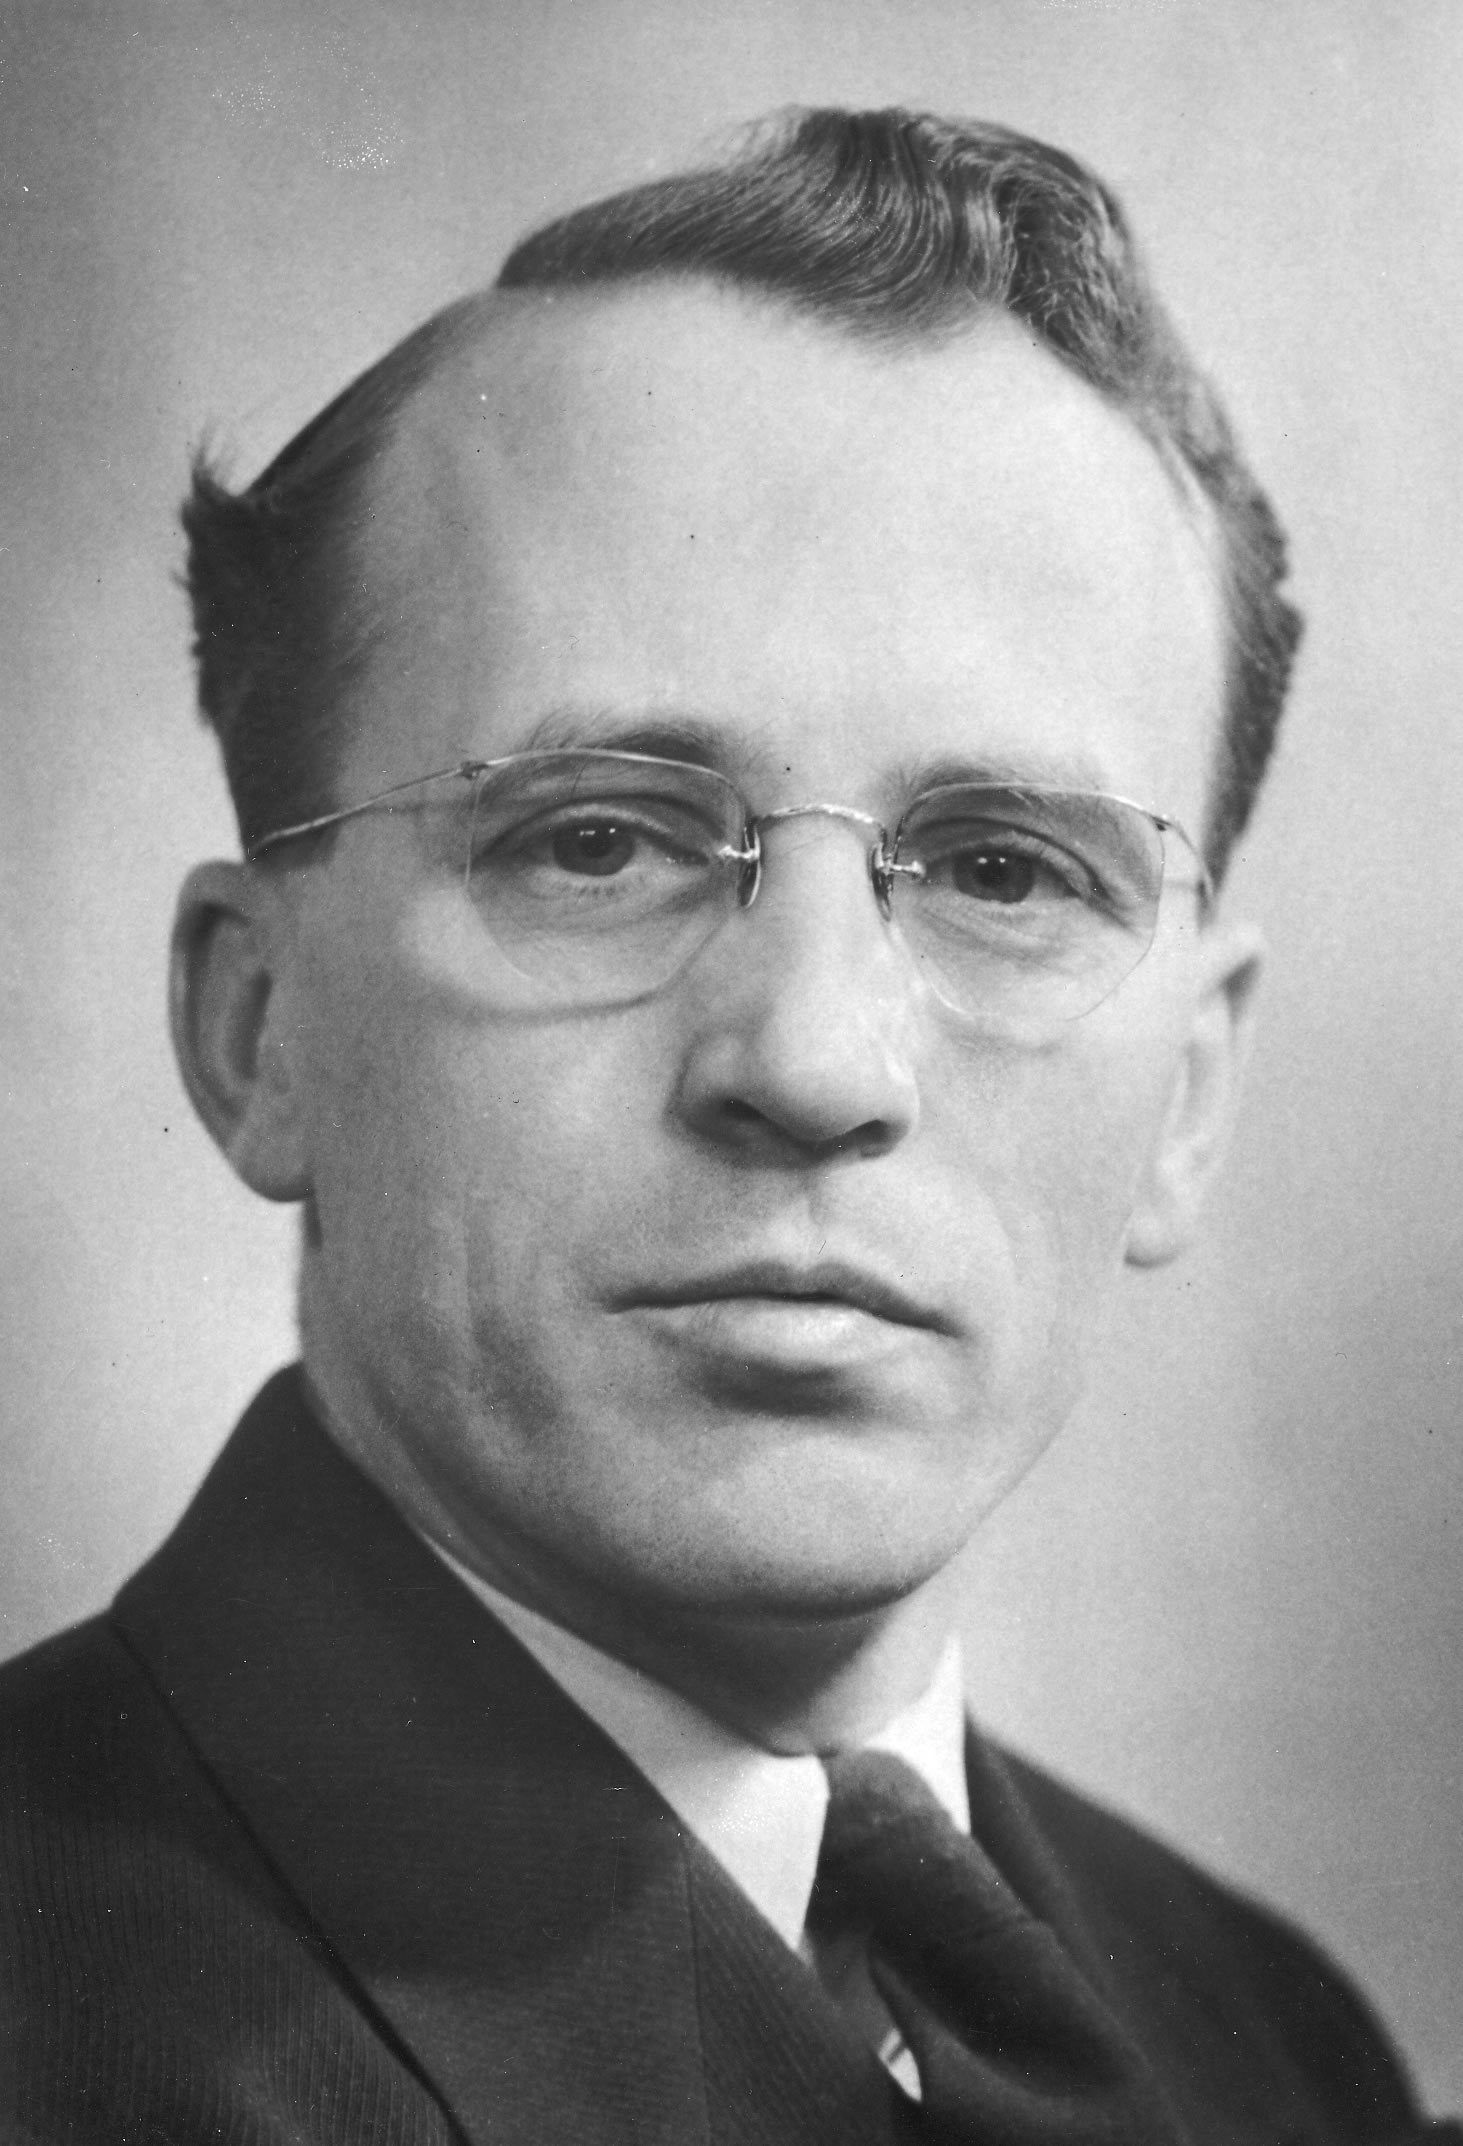 today in masonic history thomas clement tommy douglas passes away thomas clement tommy douglas passes away